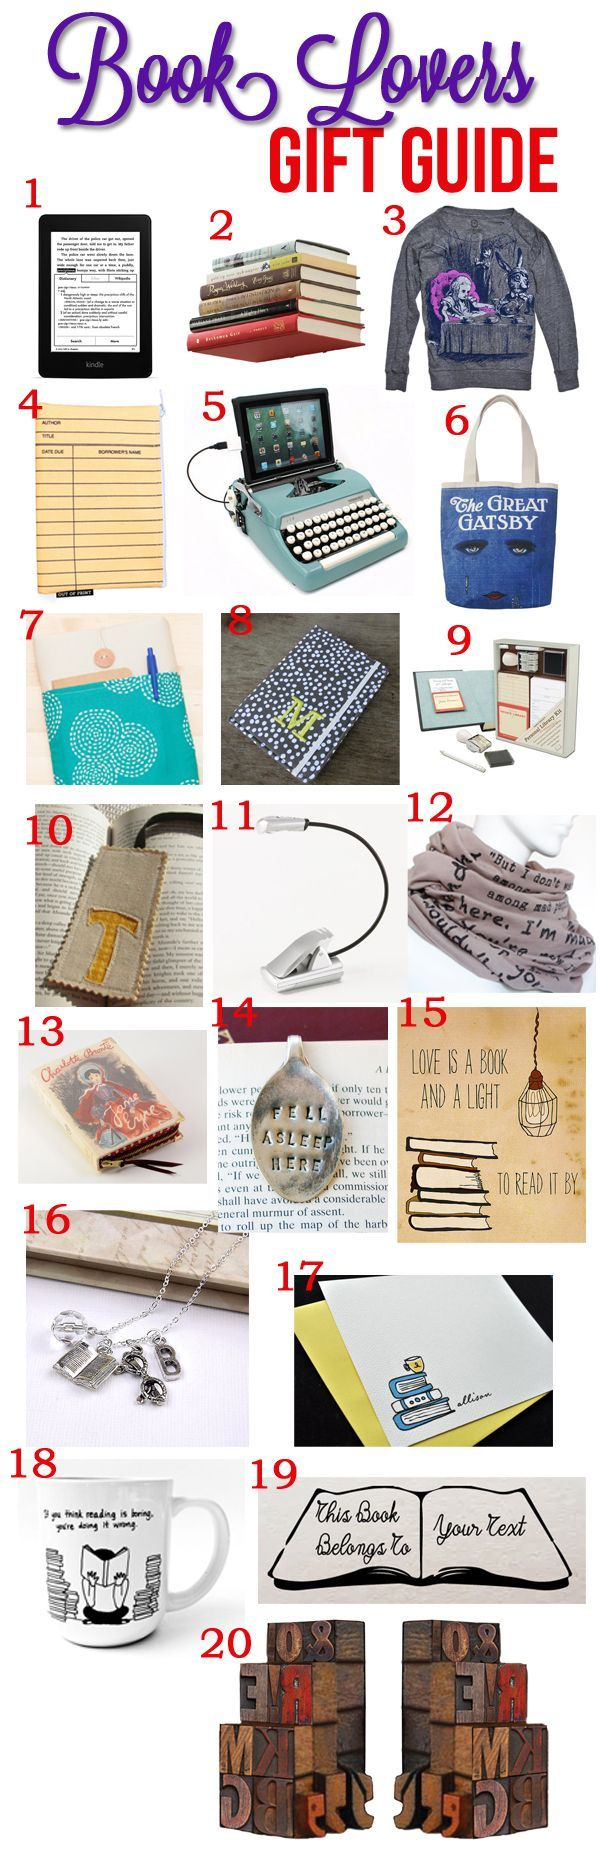 A little reminder... Gift Guide for Book Lovers via pinkheelspinktruck.com